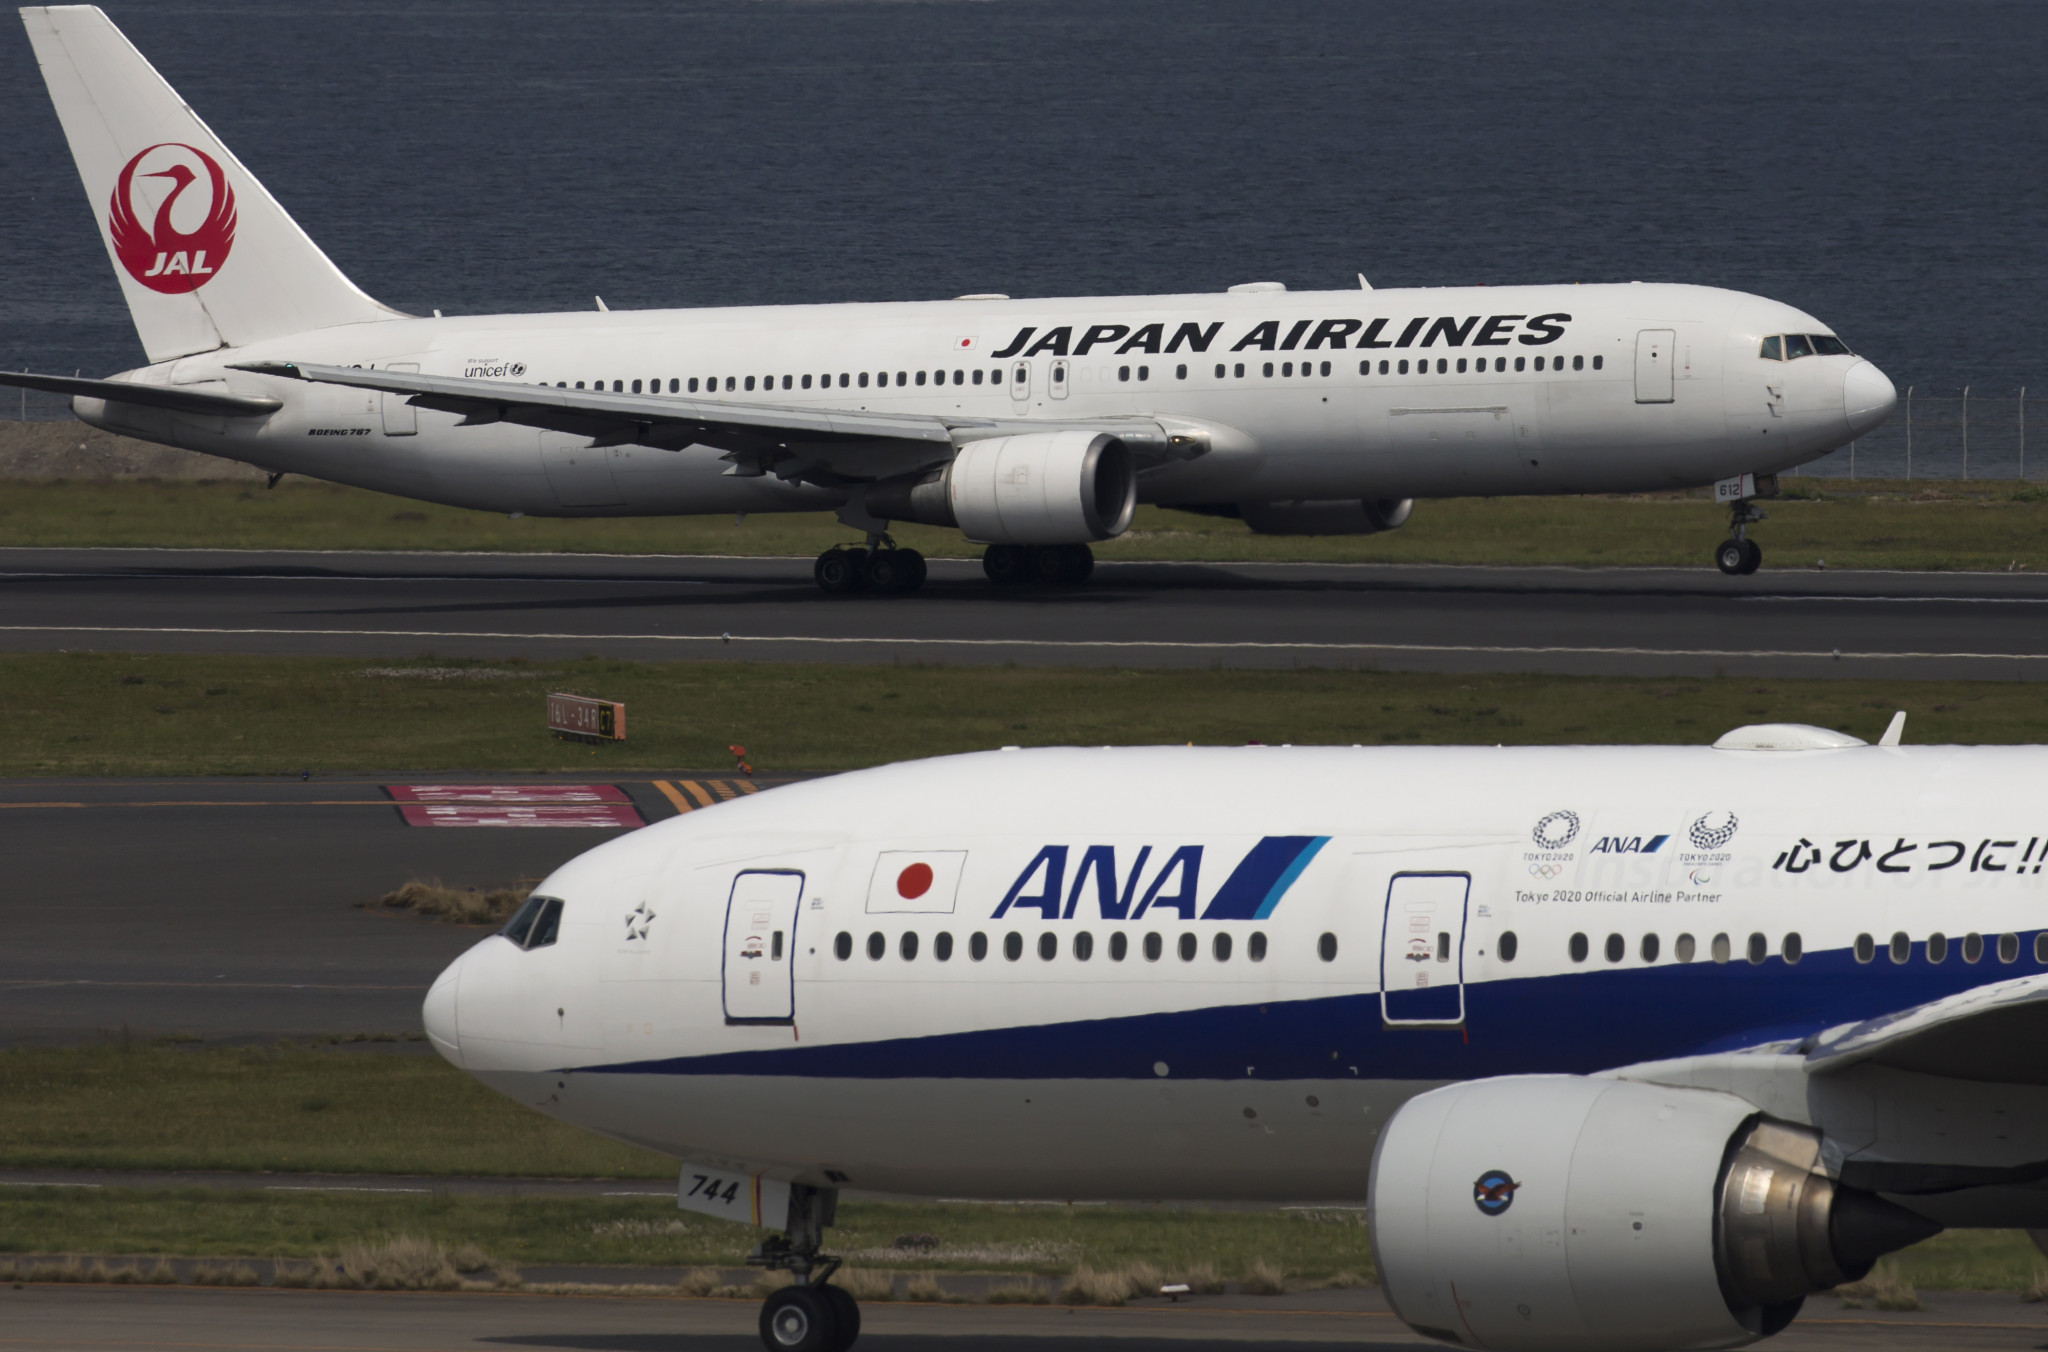 All Nippon Airways and Japan Airlines become supporting partners of Tokyo 2020 Olympic Torch Relay